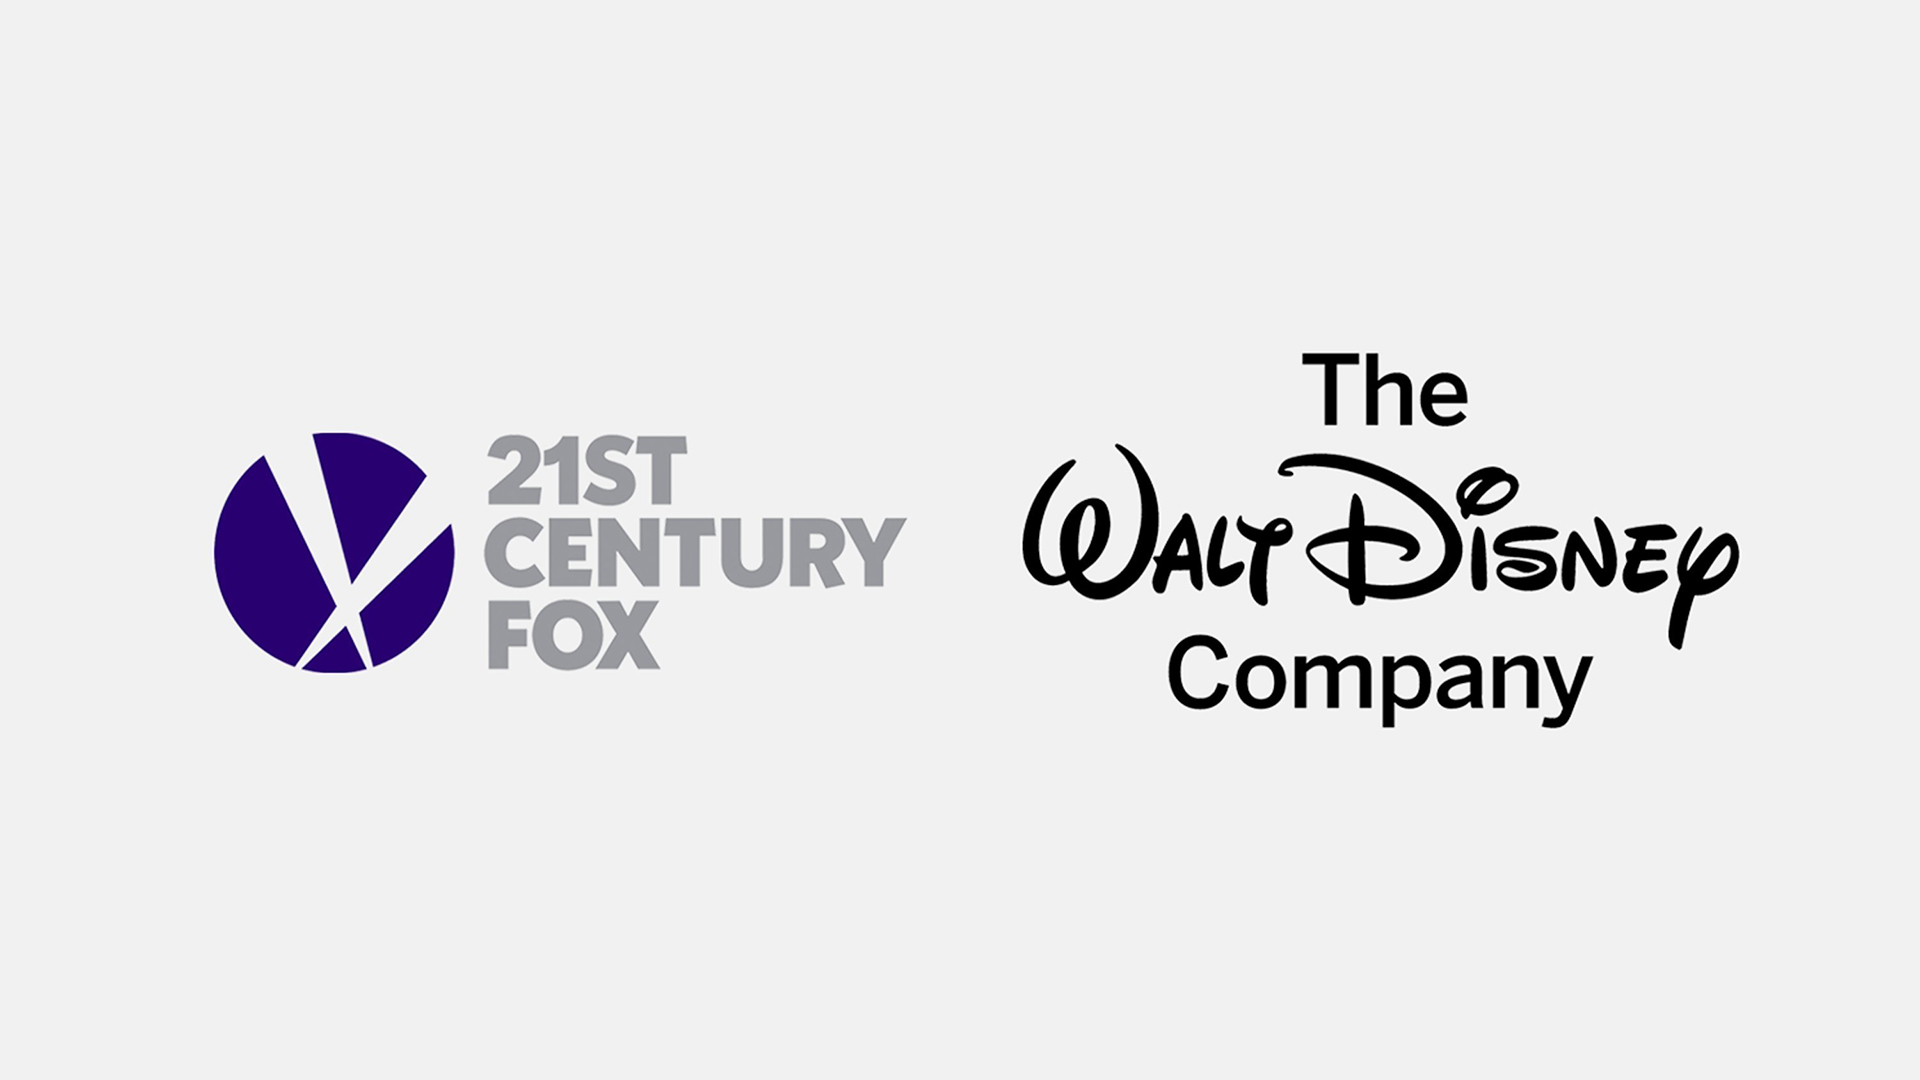 Fox Disney merger CNN graphic-159532.jpg98993693